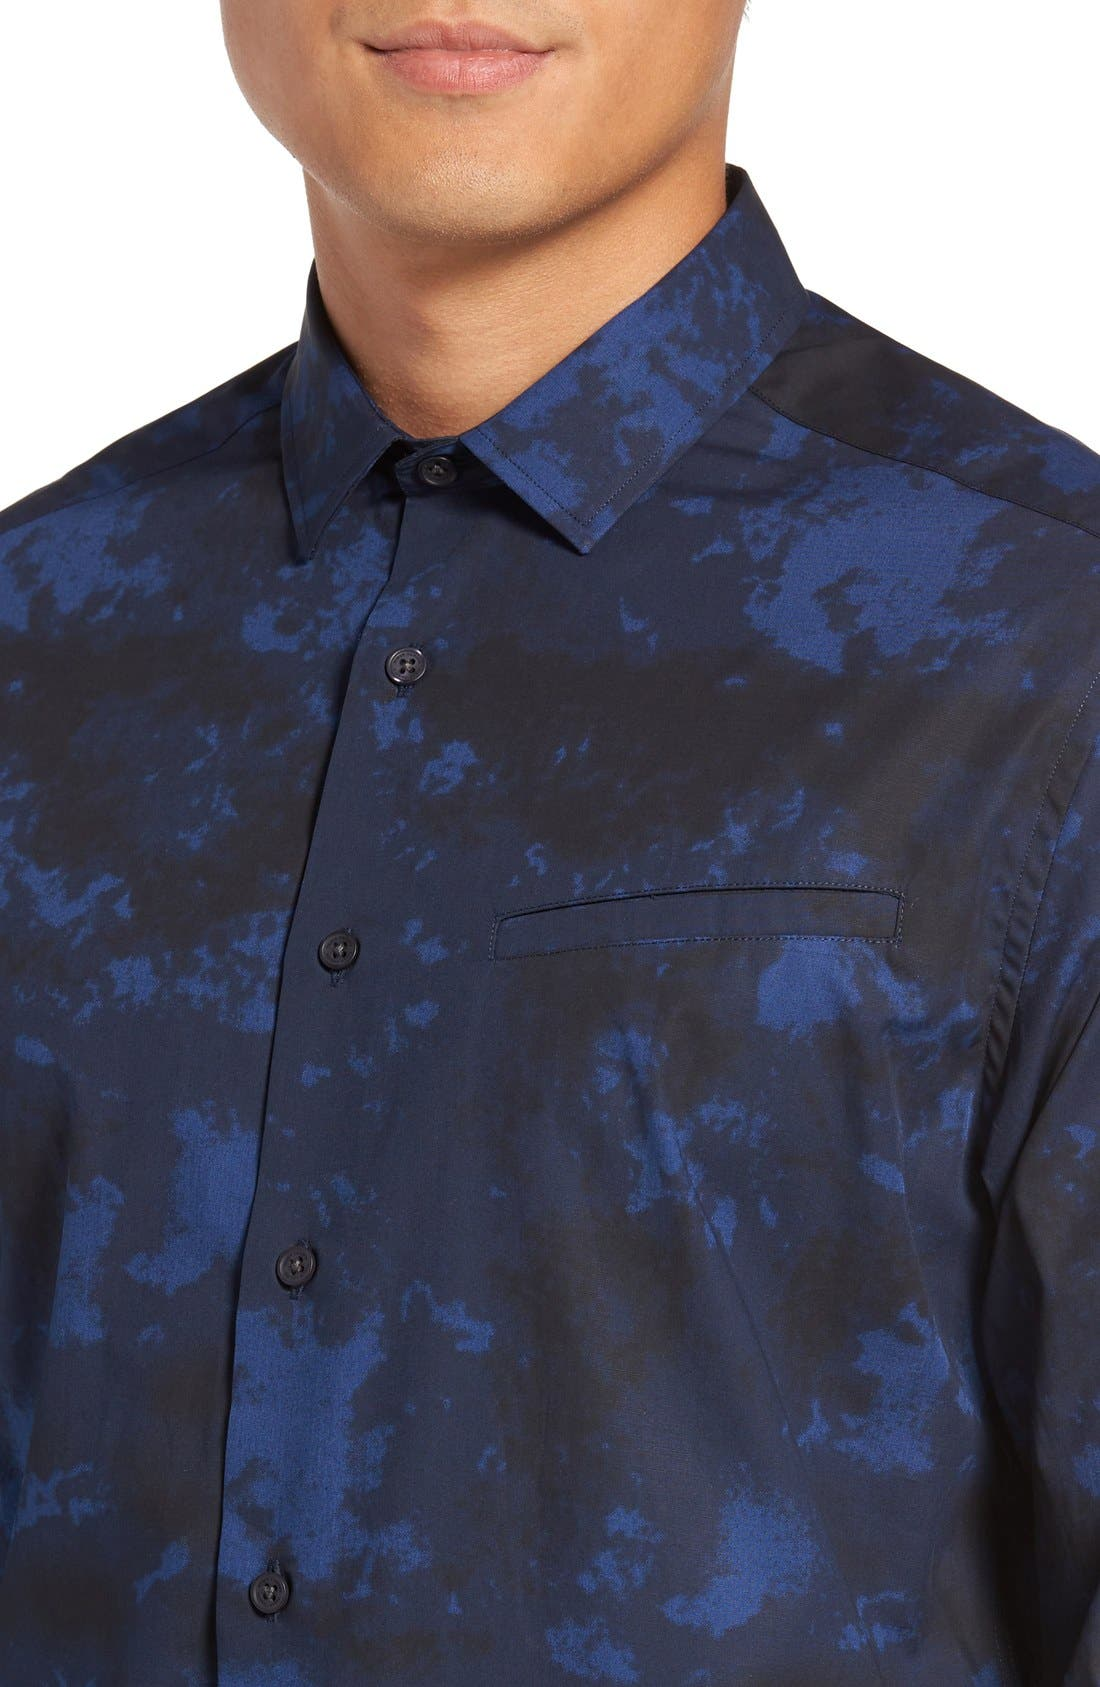 Slim Fit Sport Shirt,                             Alternate thumbnail 4, color,                             Navy/ Black Dyed Print